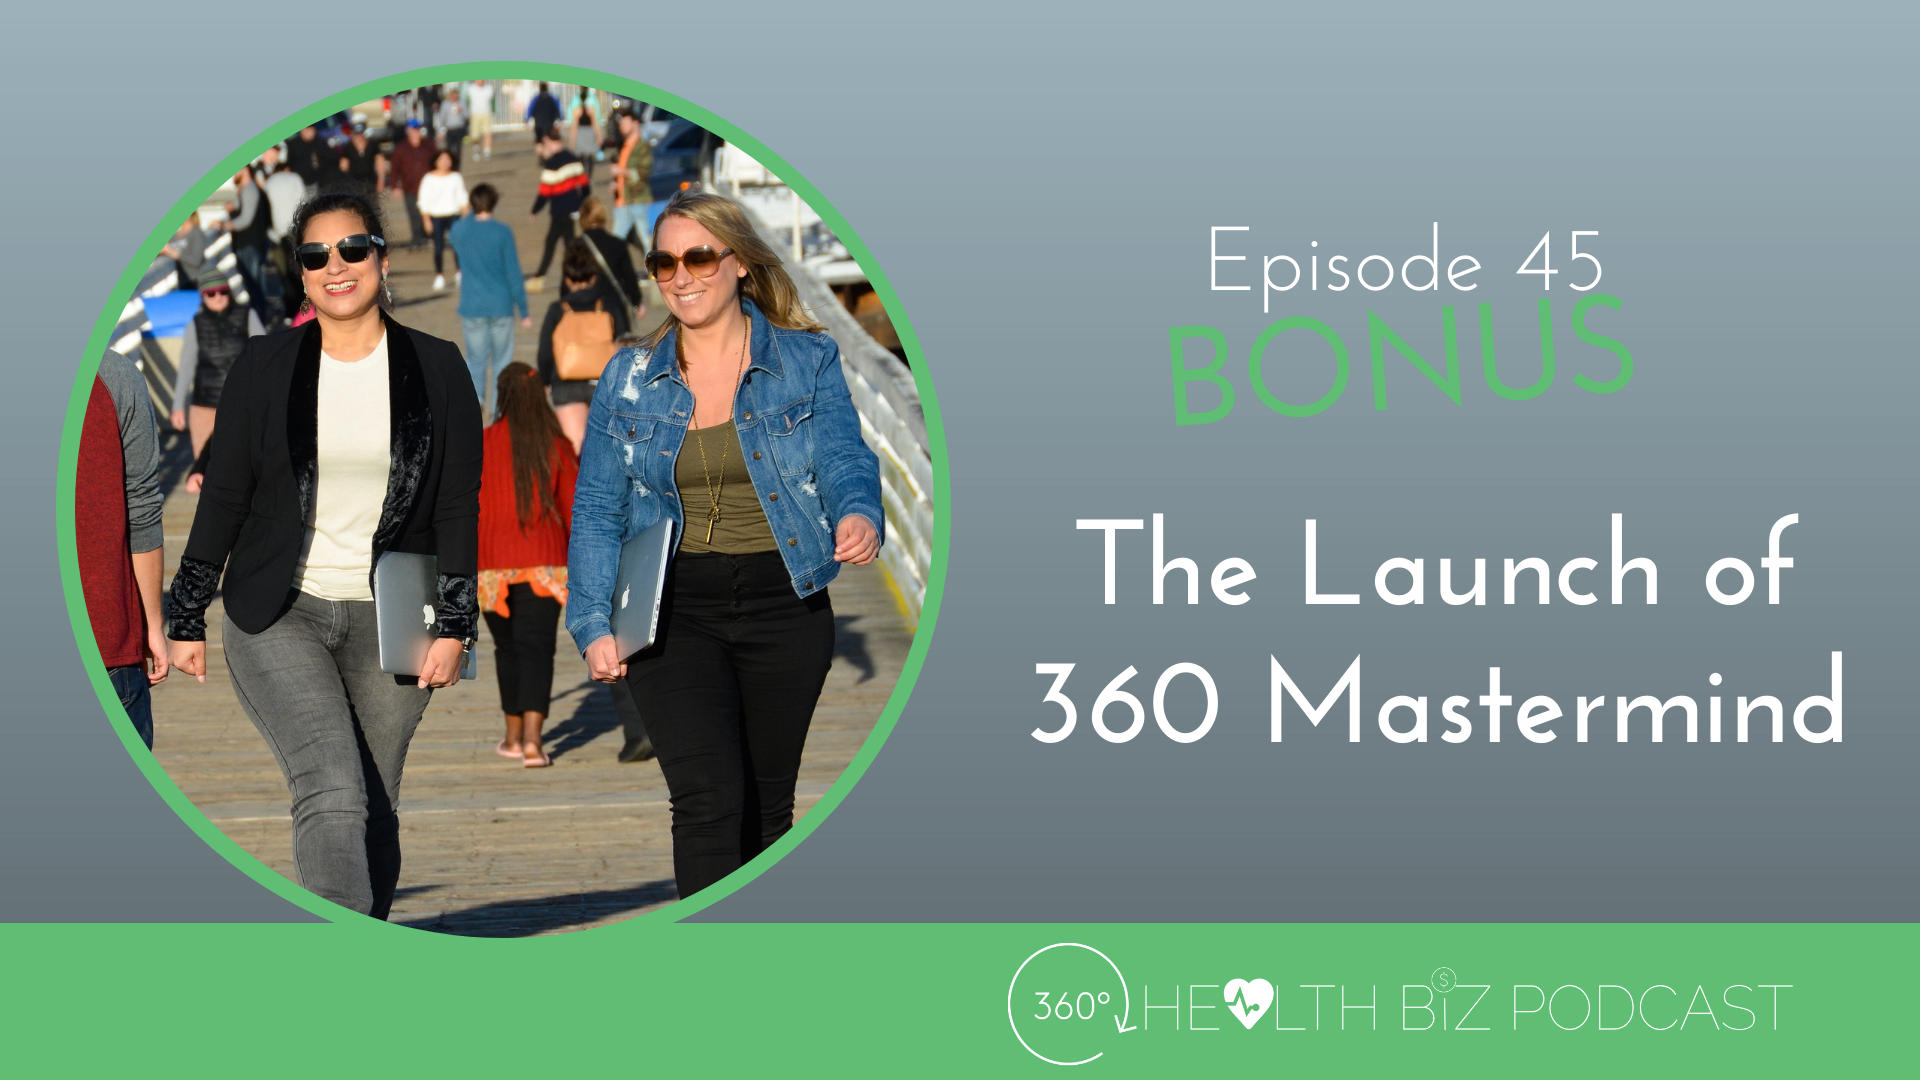 What is a Mastermind Group And Launch of 360 Mastermind